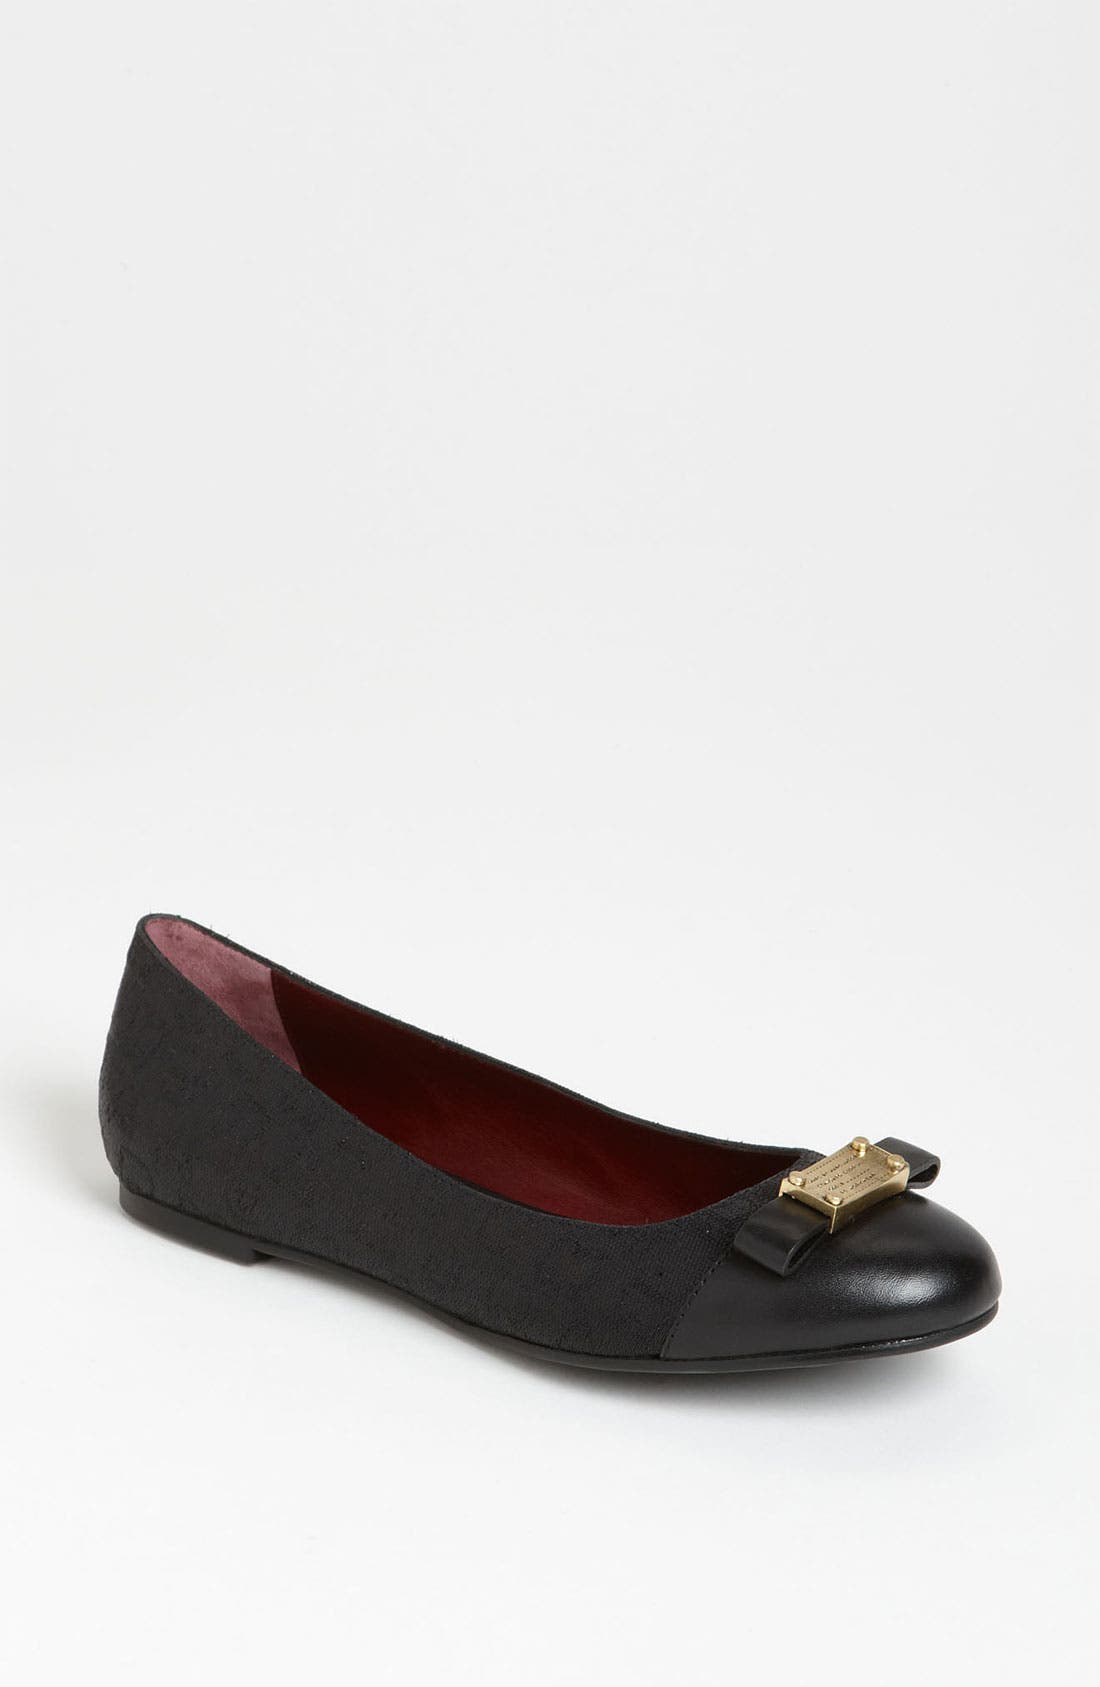 Main Image - MARC BY MARC JACOBS 'Tuxedo' Flat